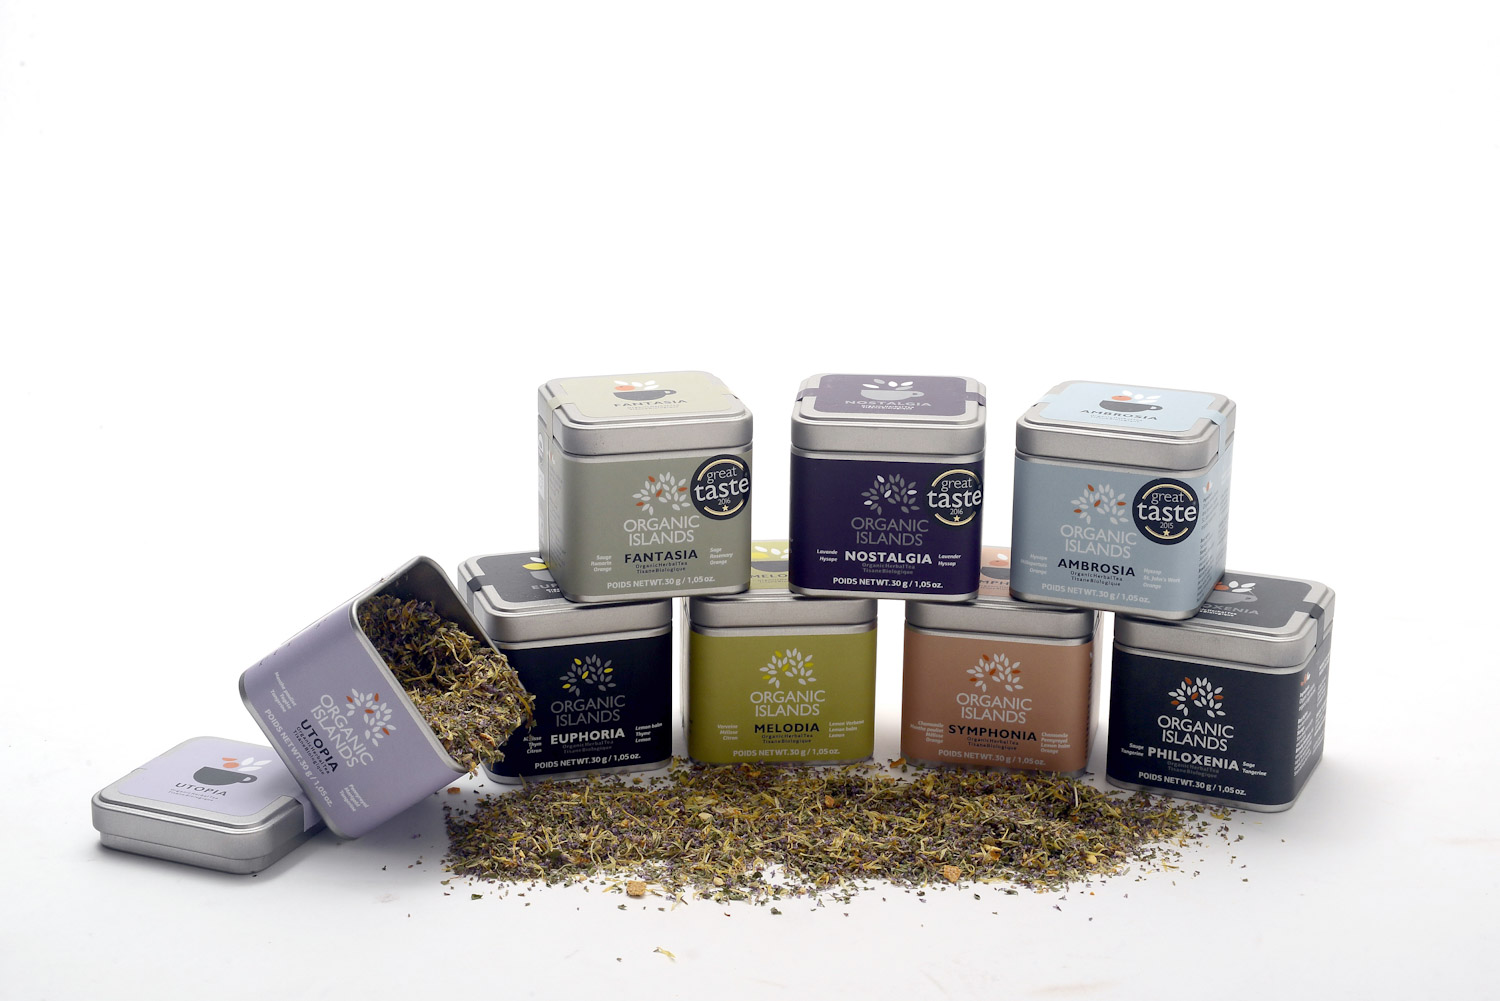 Organic Islands Herbal Teas - It's herbal health in a cup… Organic, hand picked, loose leaf & caffeine -free